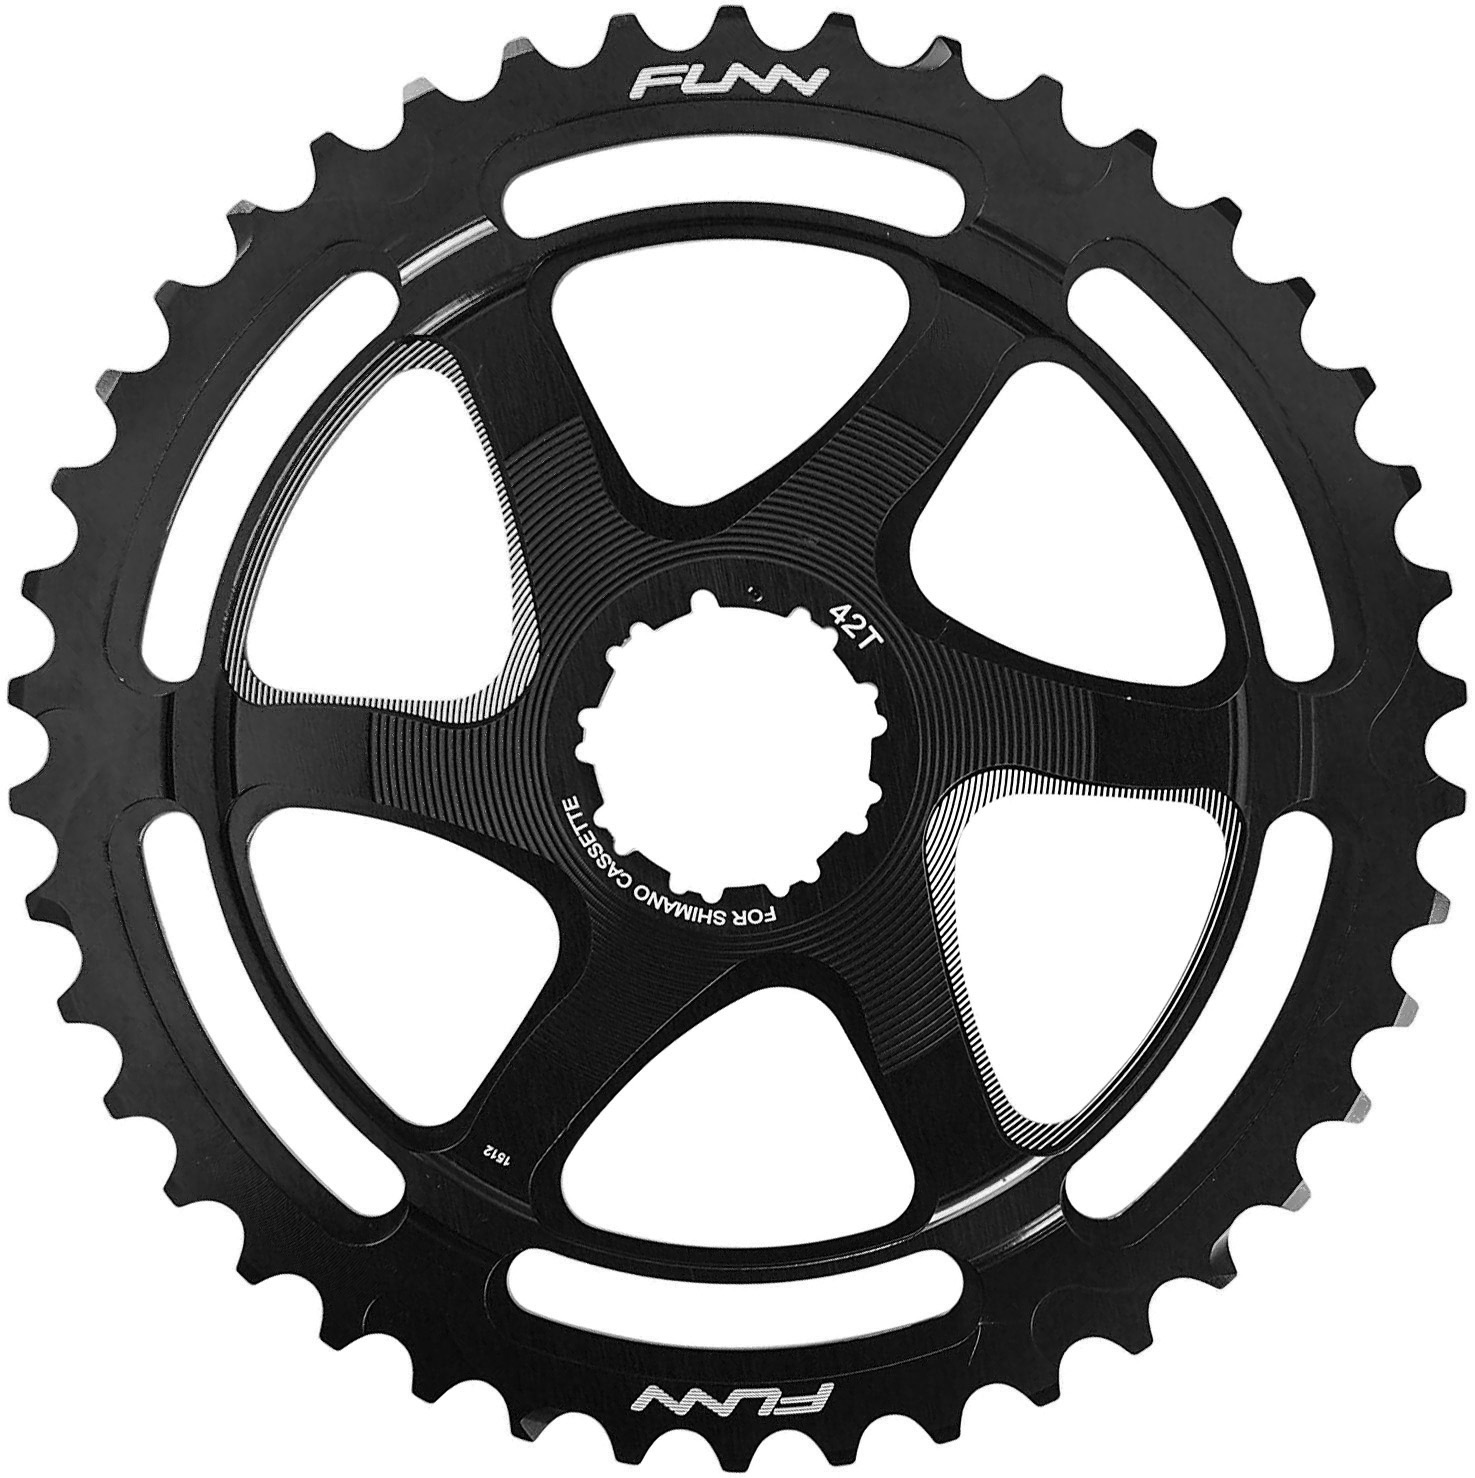 Funn Clinch Expander Sprocket | chainrings_component